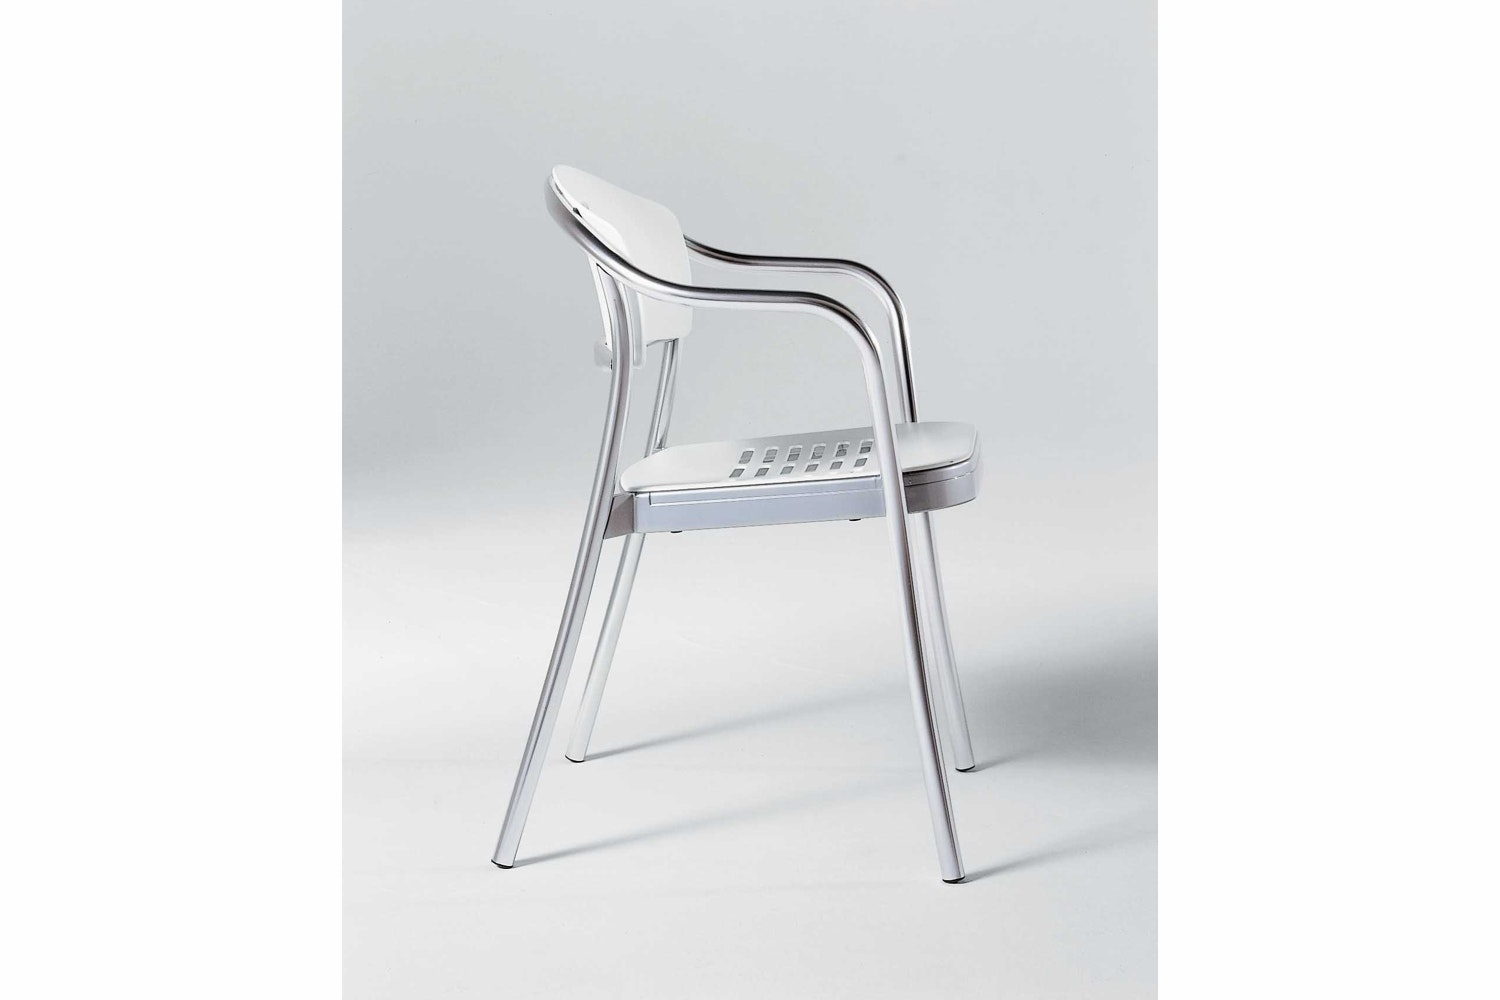 Mauna-Kea Chair with Arms by Vico Magistretti for Kartell